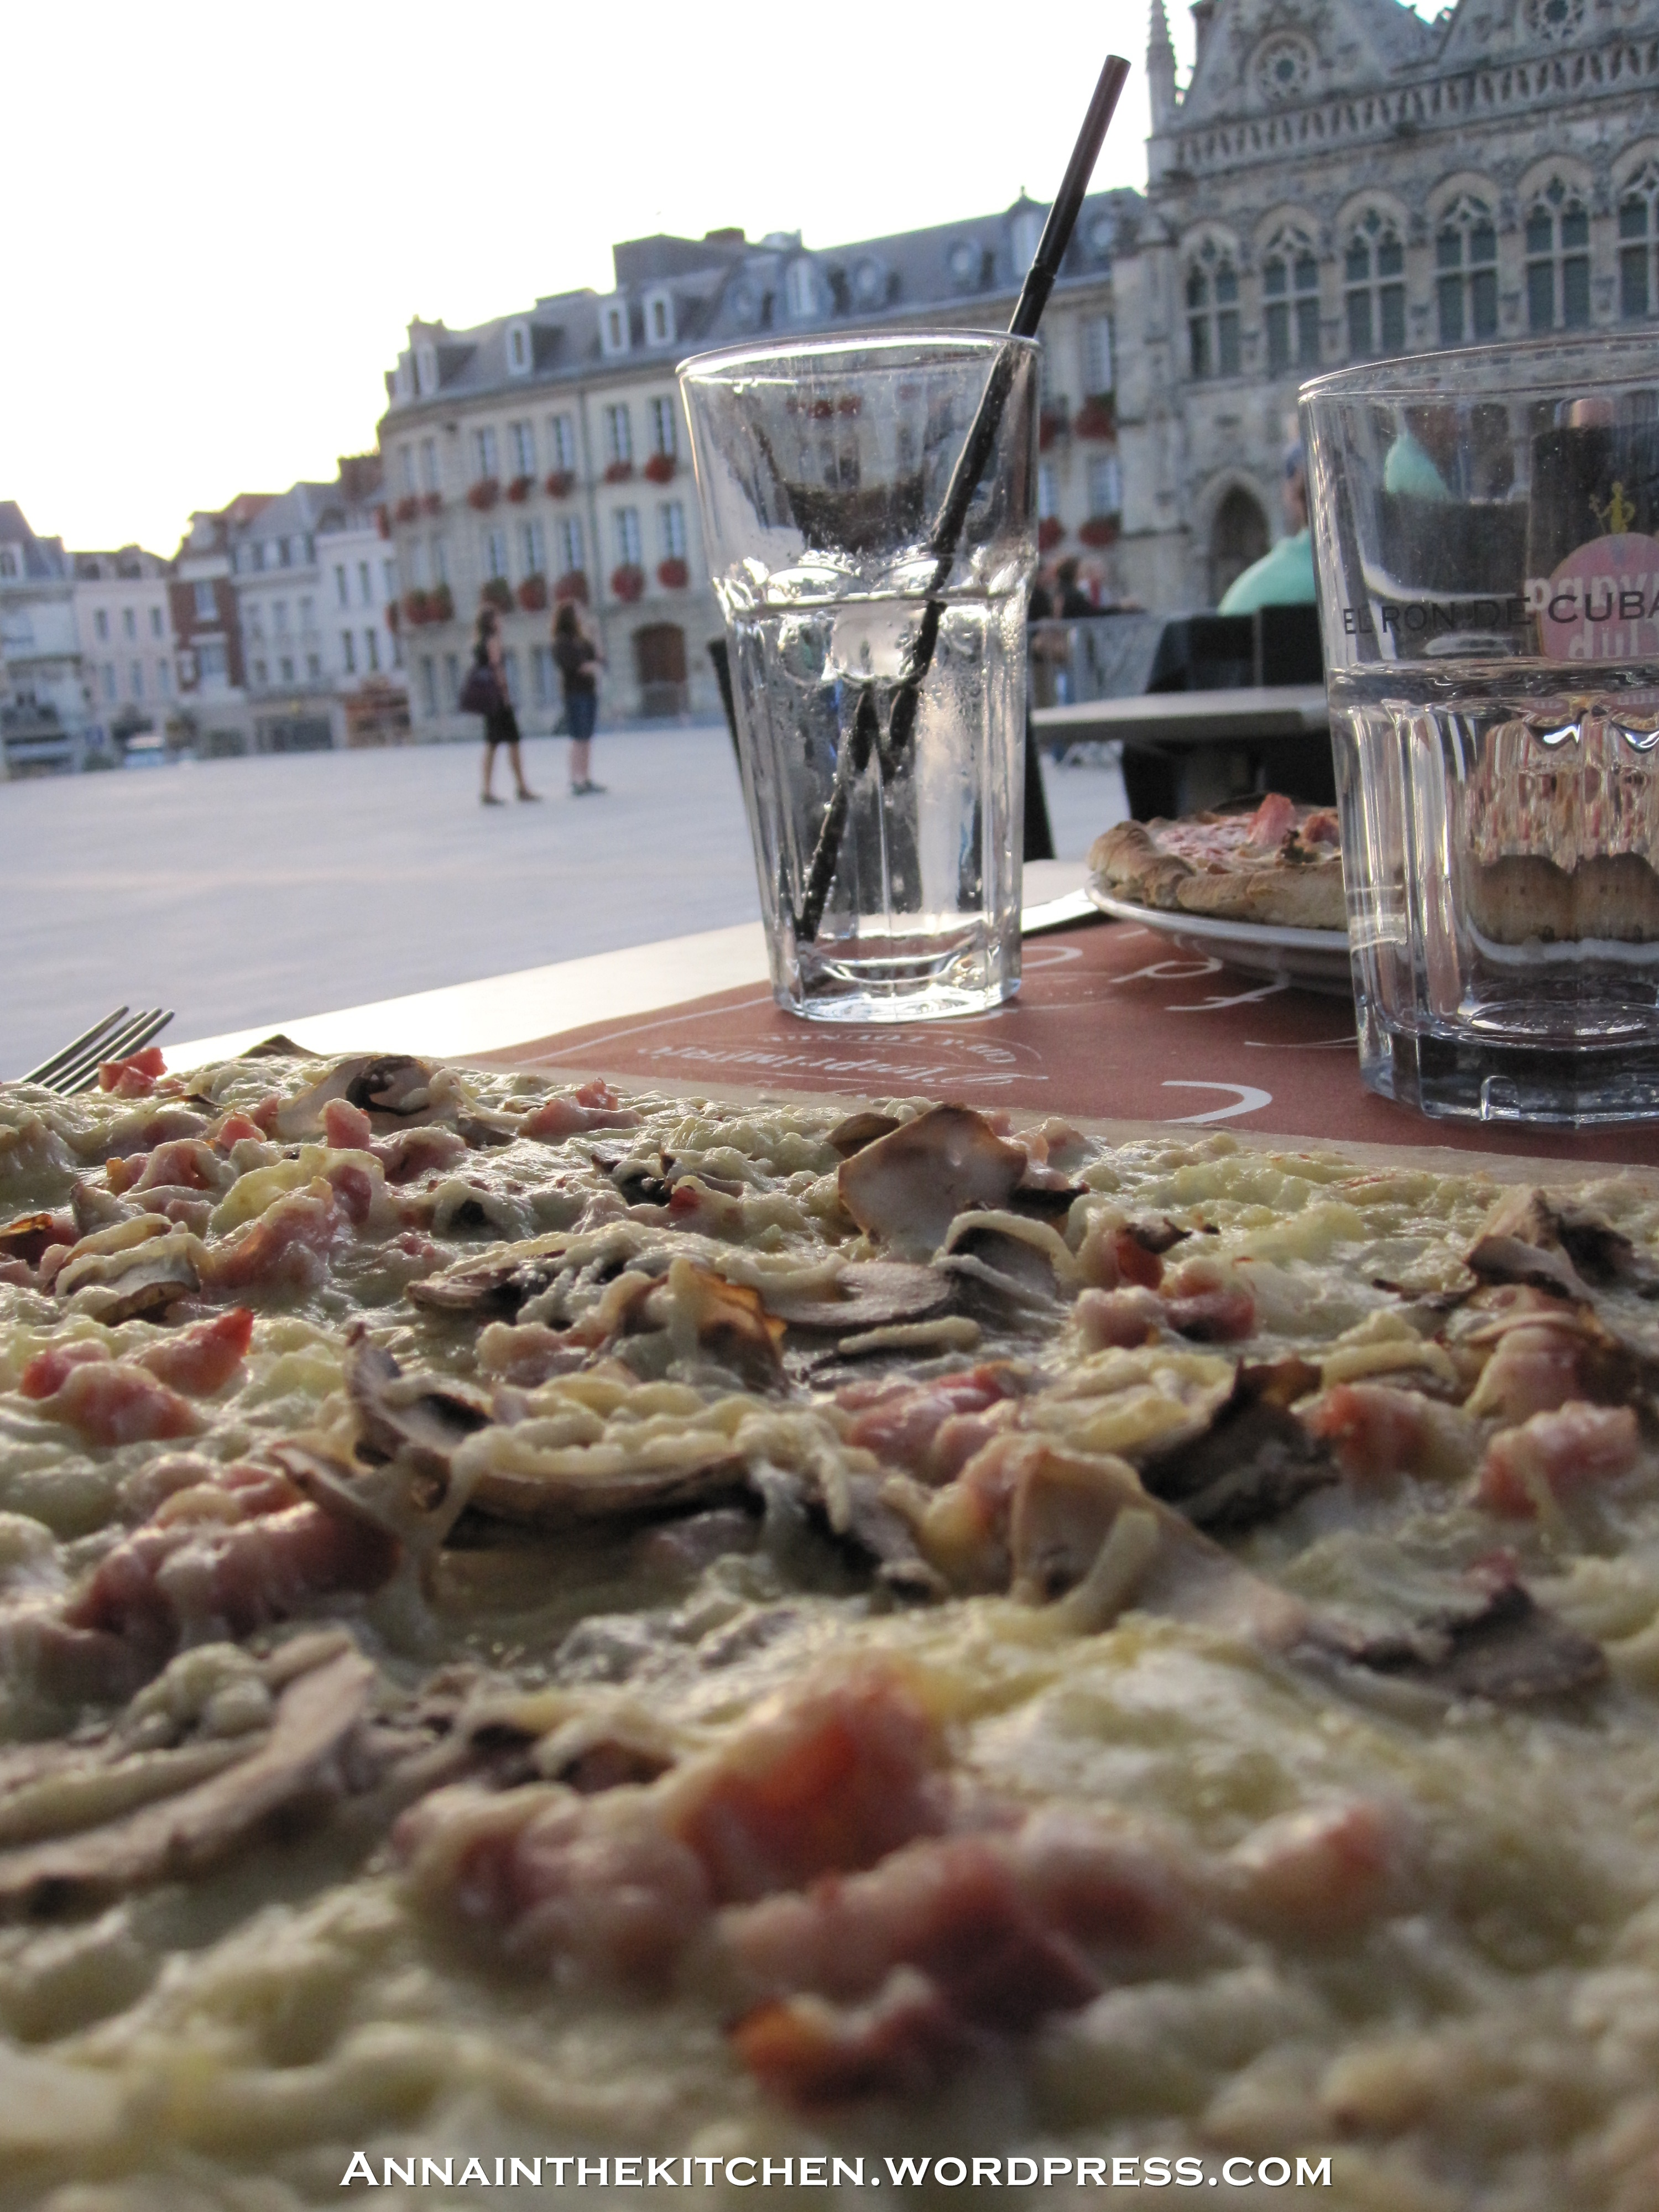 Sitting in St Quentin town square eating dinner.